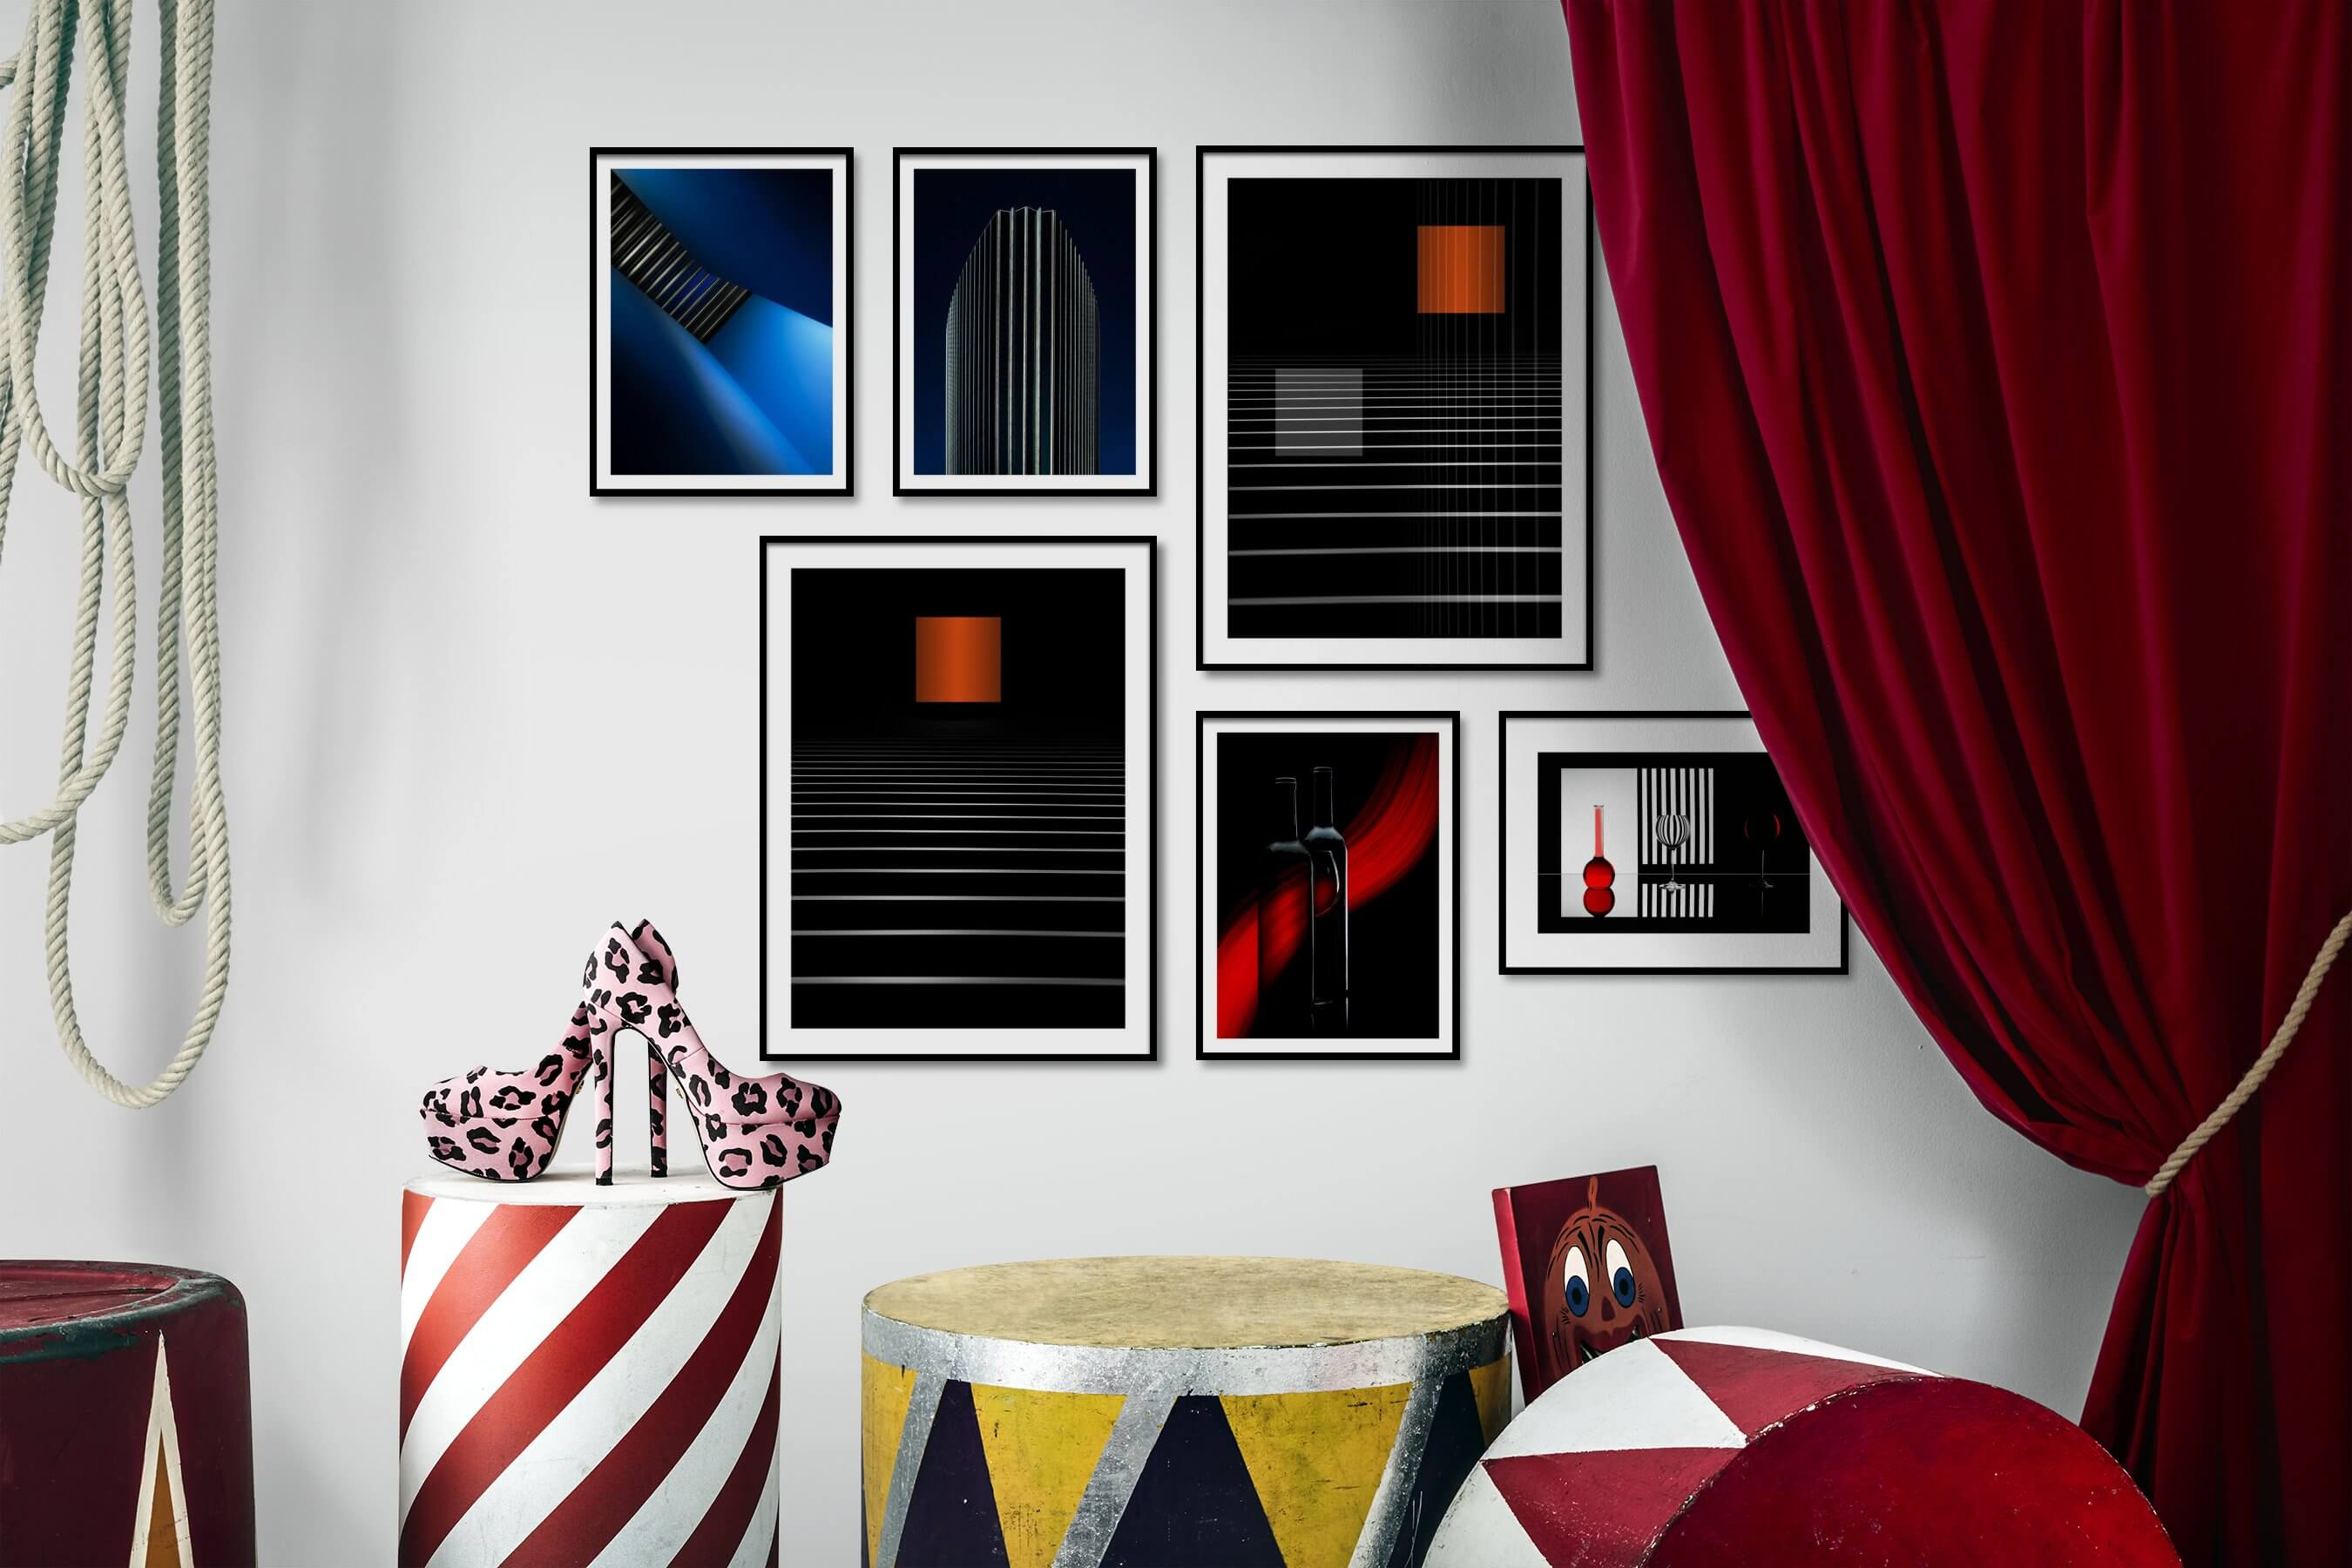 Gallery wall idea with six framed pictures arranged on a wall depicting For the Moderate, For the Minimalist, and City Life